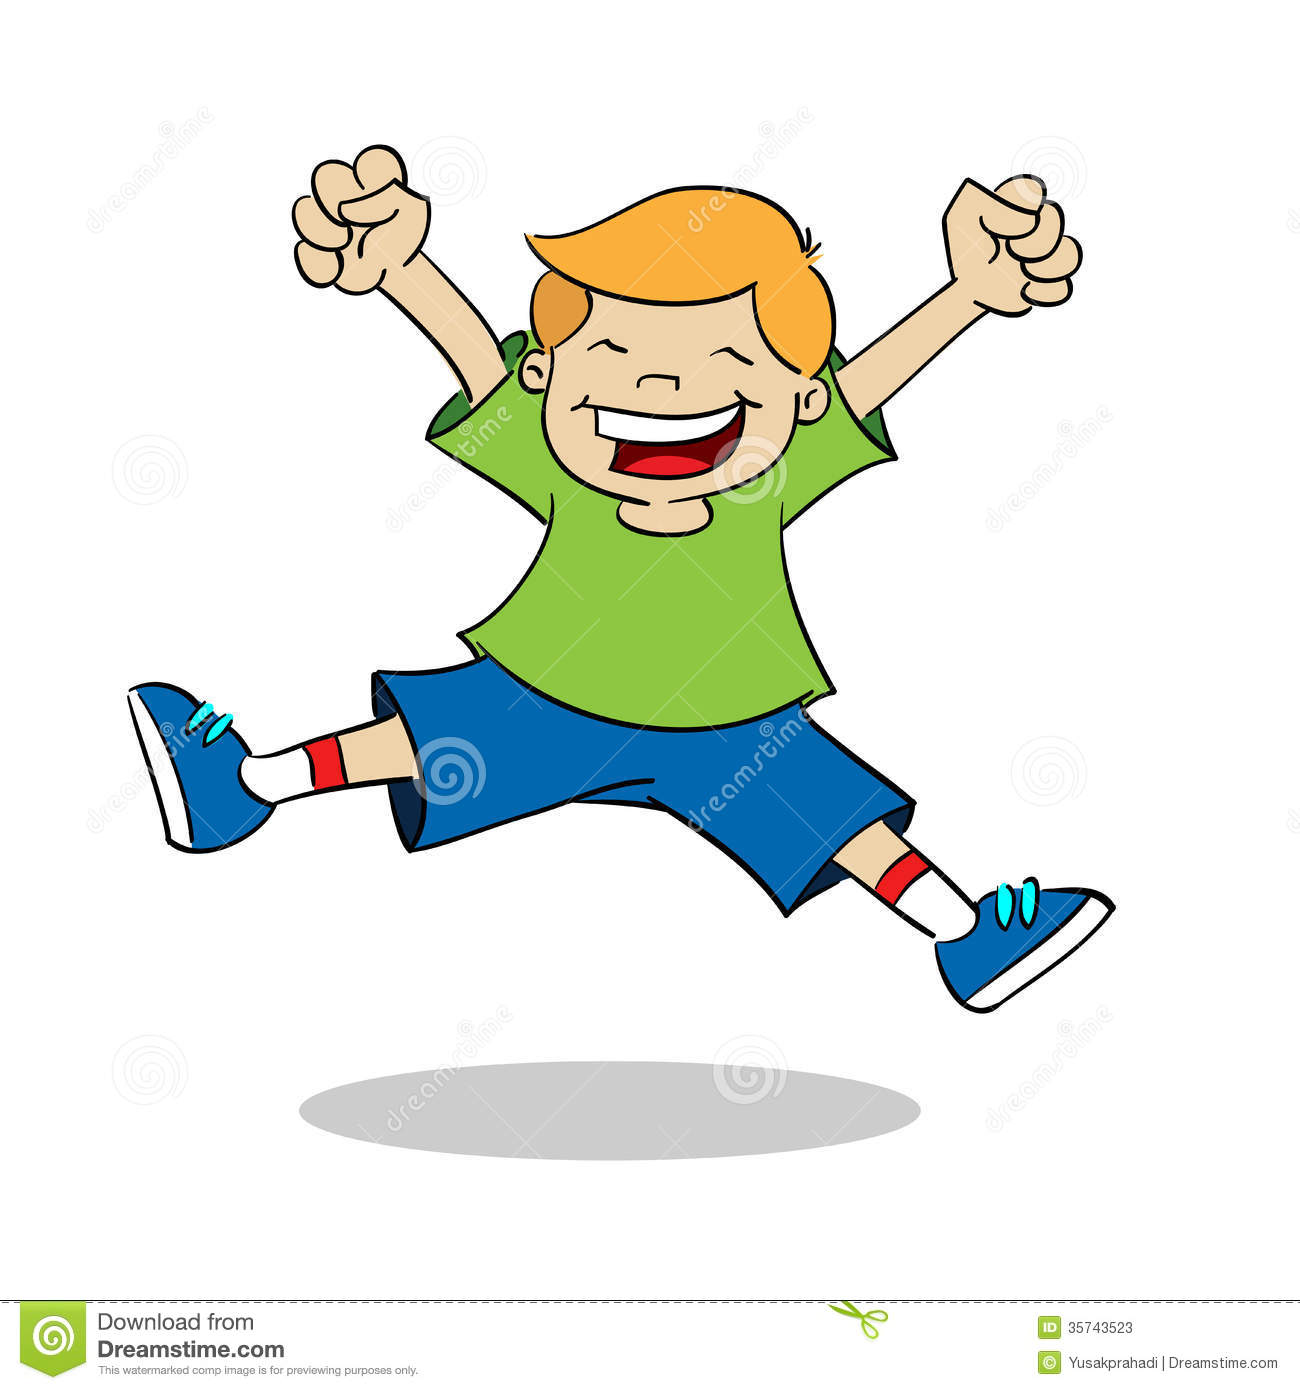 Excited kid clipart graphic royalty free stock Excited Kids Clipart | Free download best Excited Kids Clipart on ... graphic royalty free stock